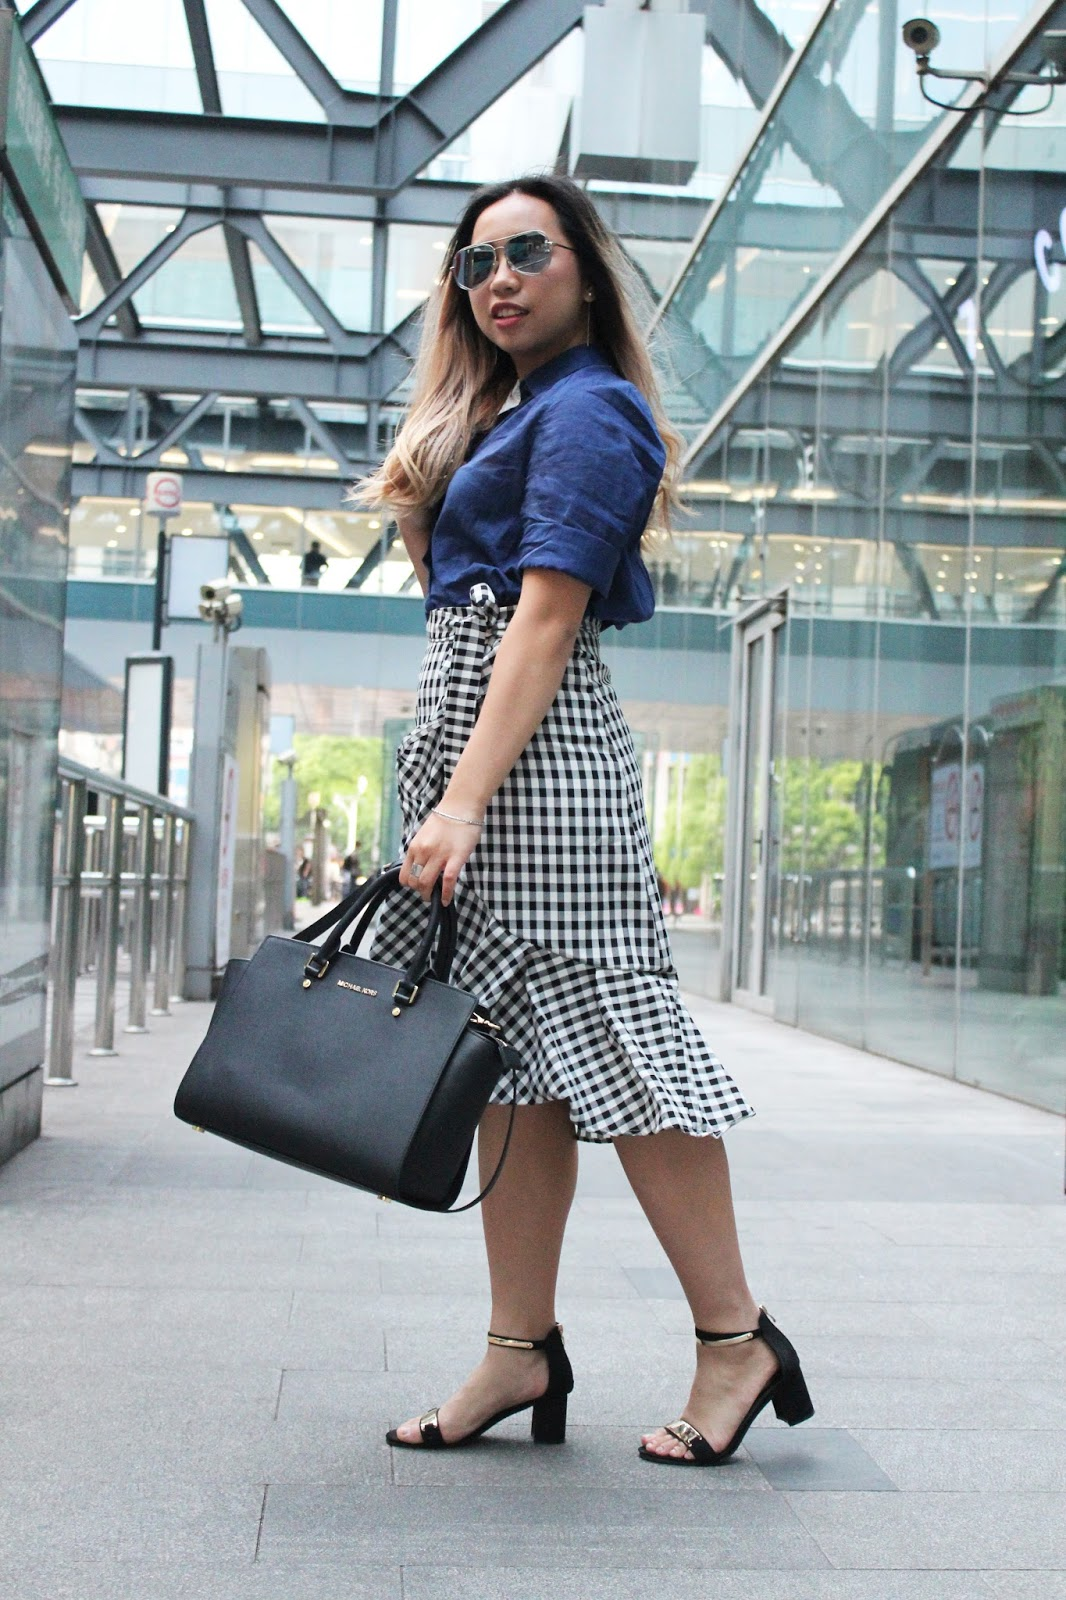 This is a photo of pairing gingham ruffled skirt piece with simple shirt from www.sidneyscarlett.com